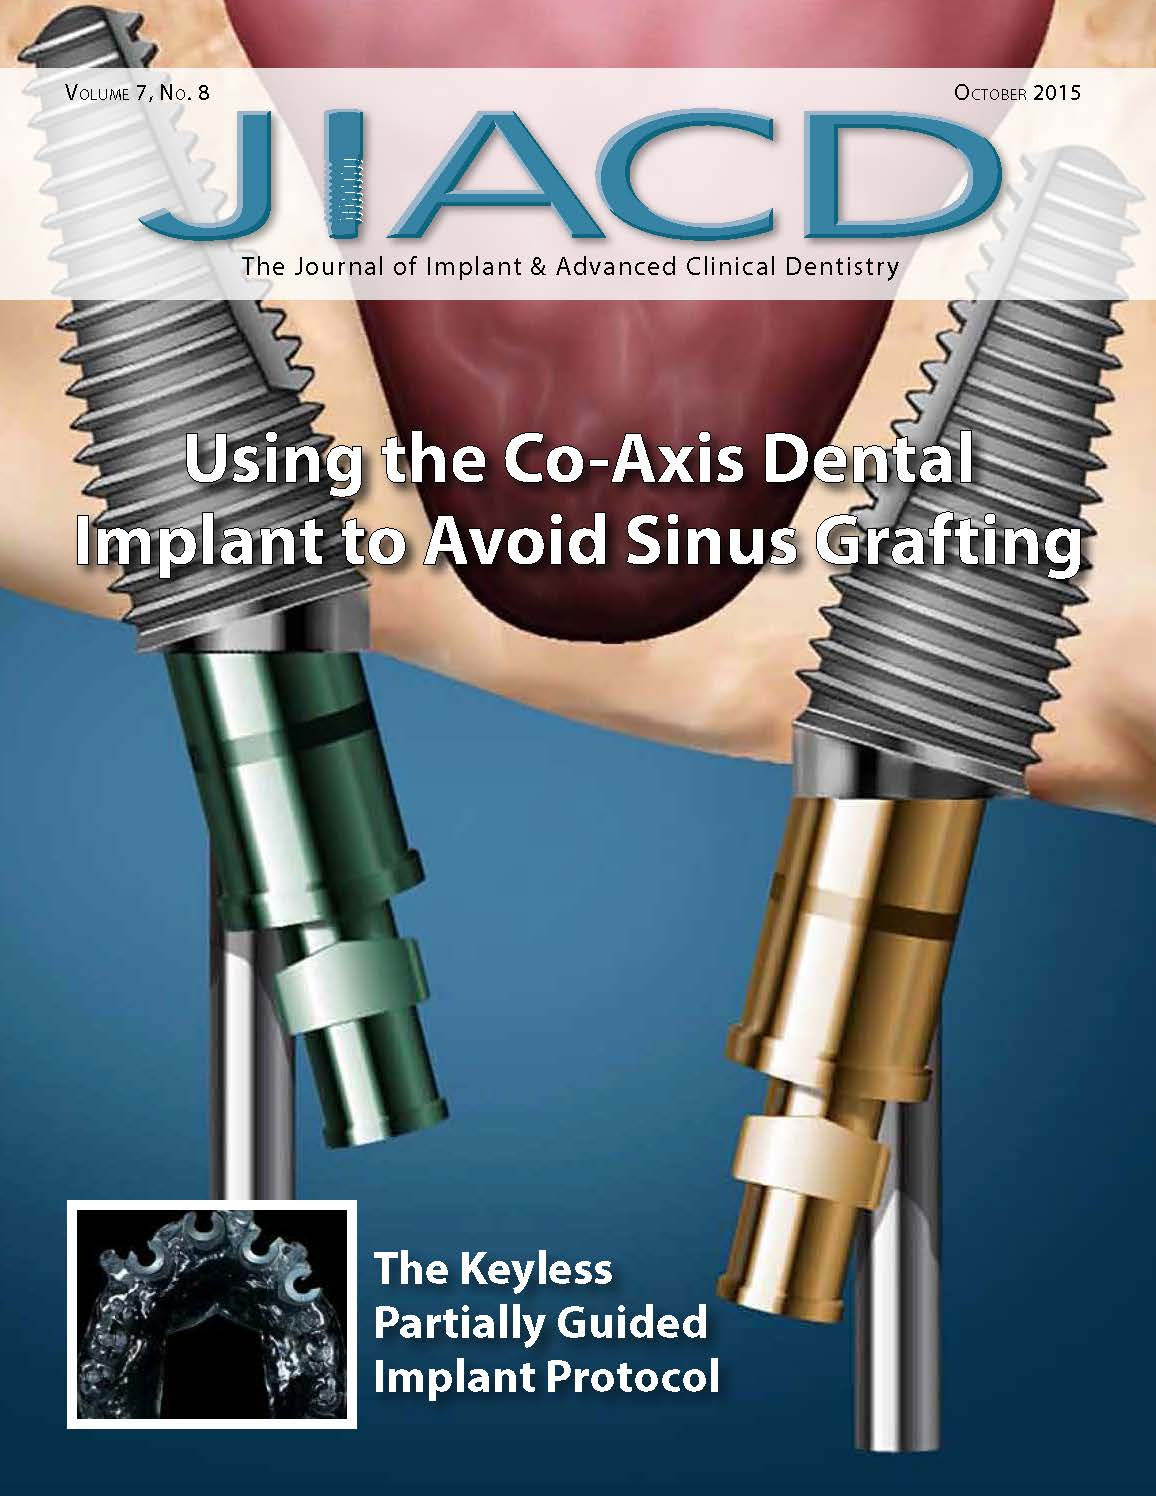 Utilization of the Co-Axis Dental Implant to Avoid Sinus Augmentation: A Case Report